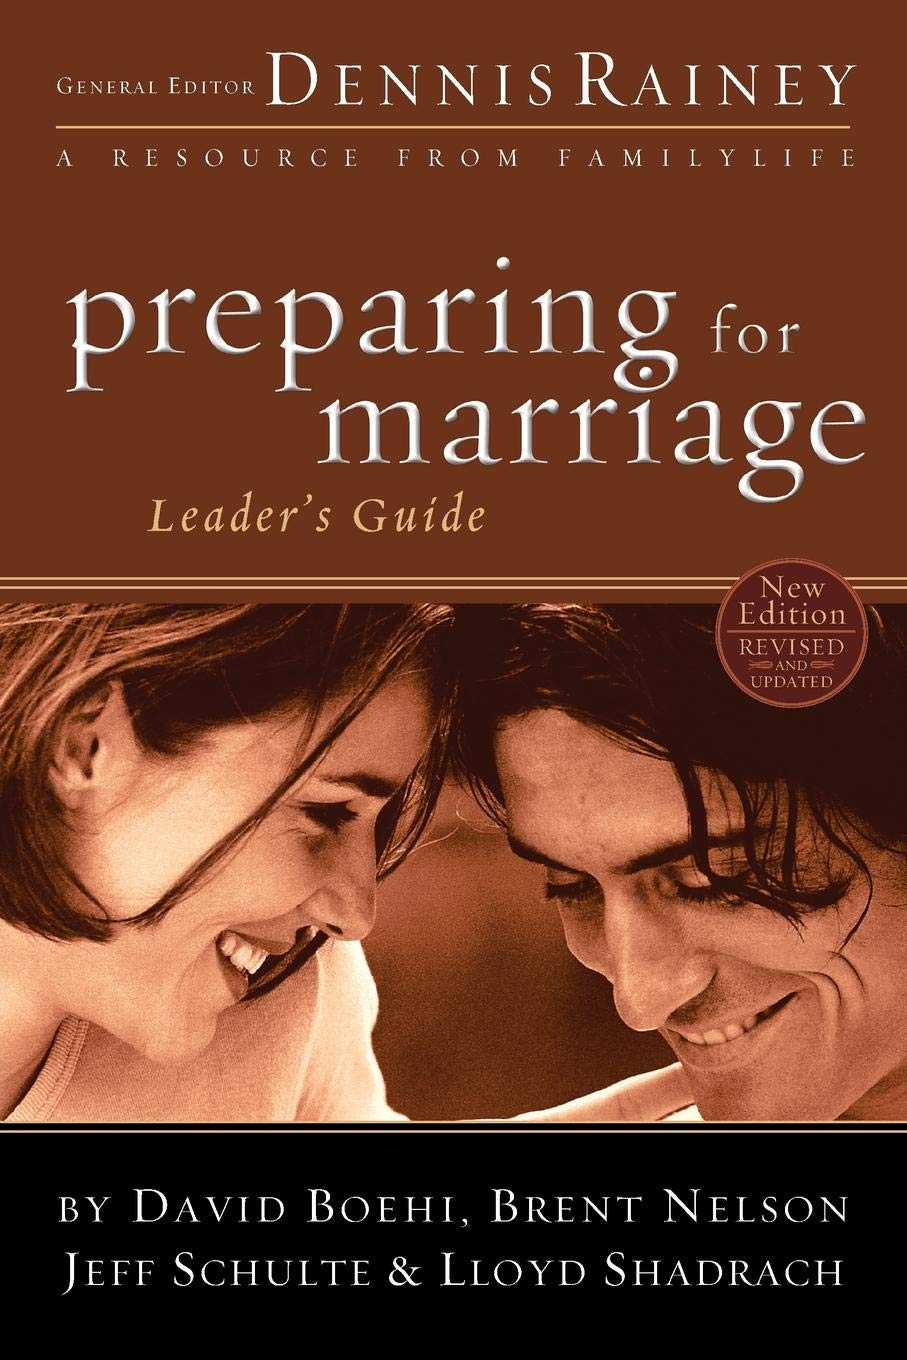 Preparing for Marriage Leader's Guide PDF